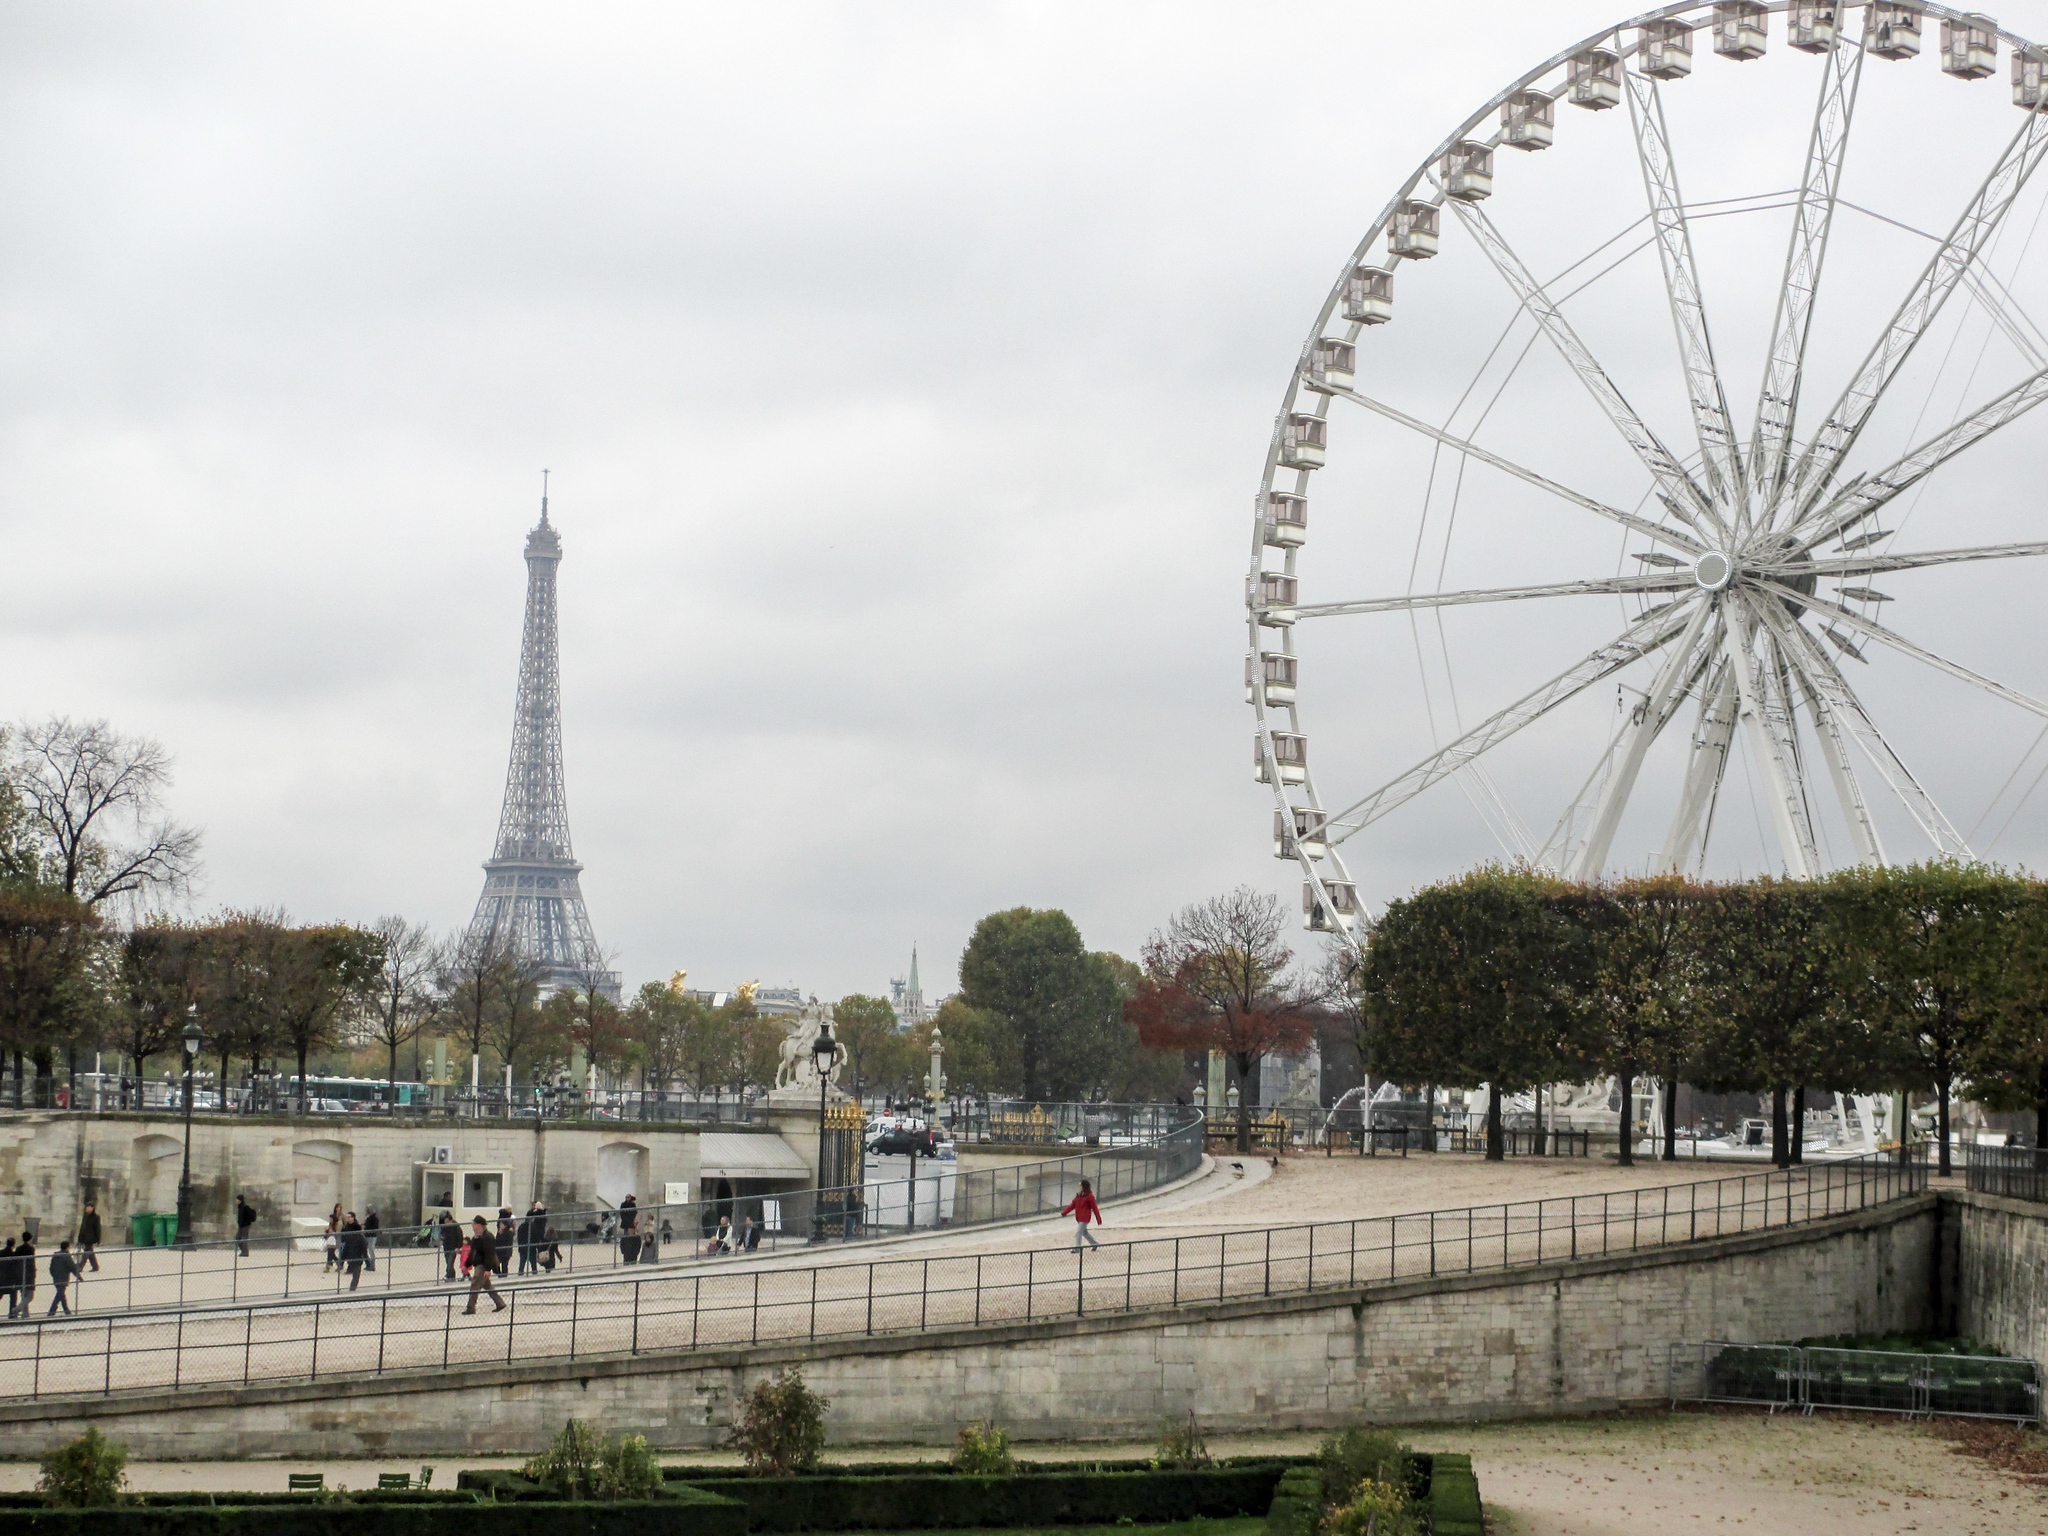 2 week backpacking europe itinerary will start in gorgeous paris